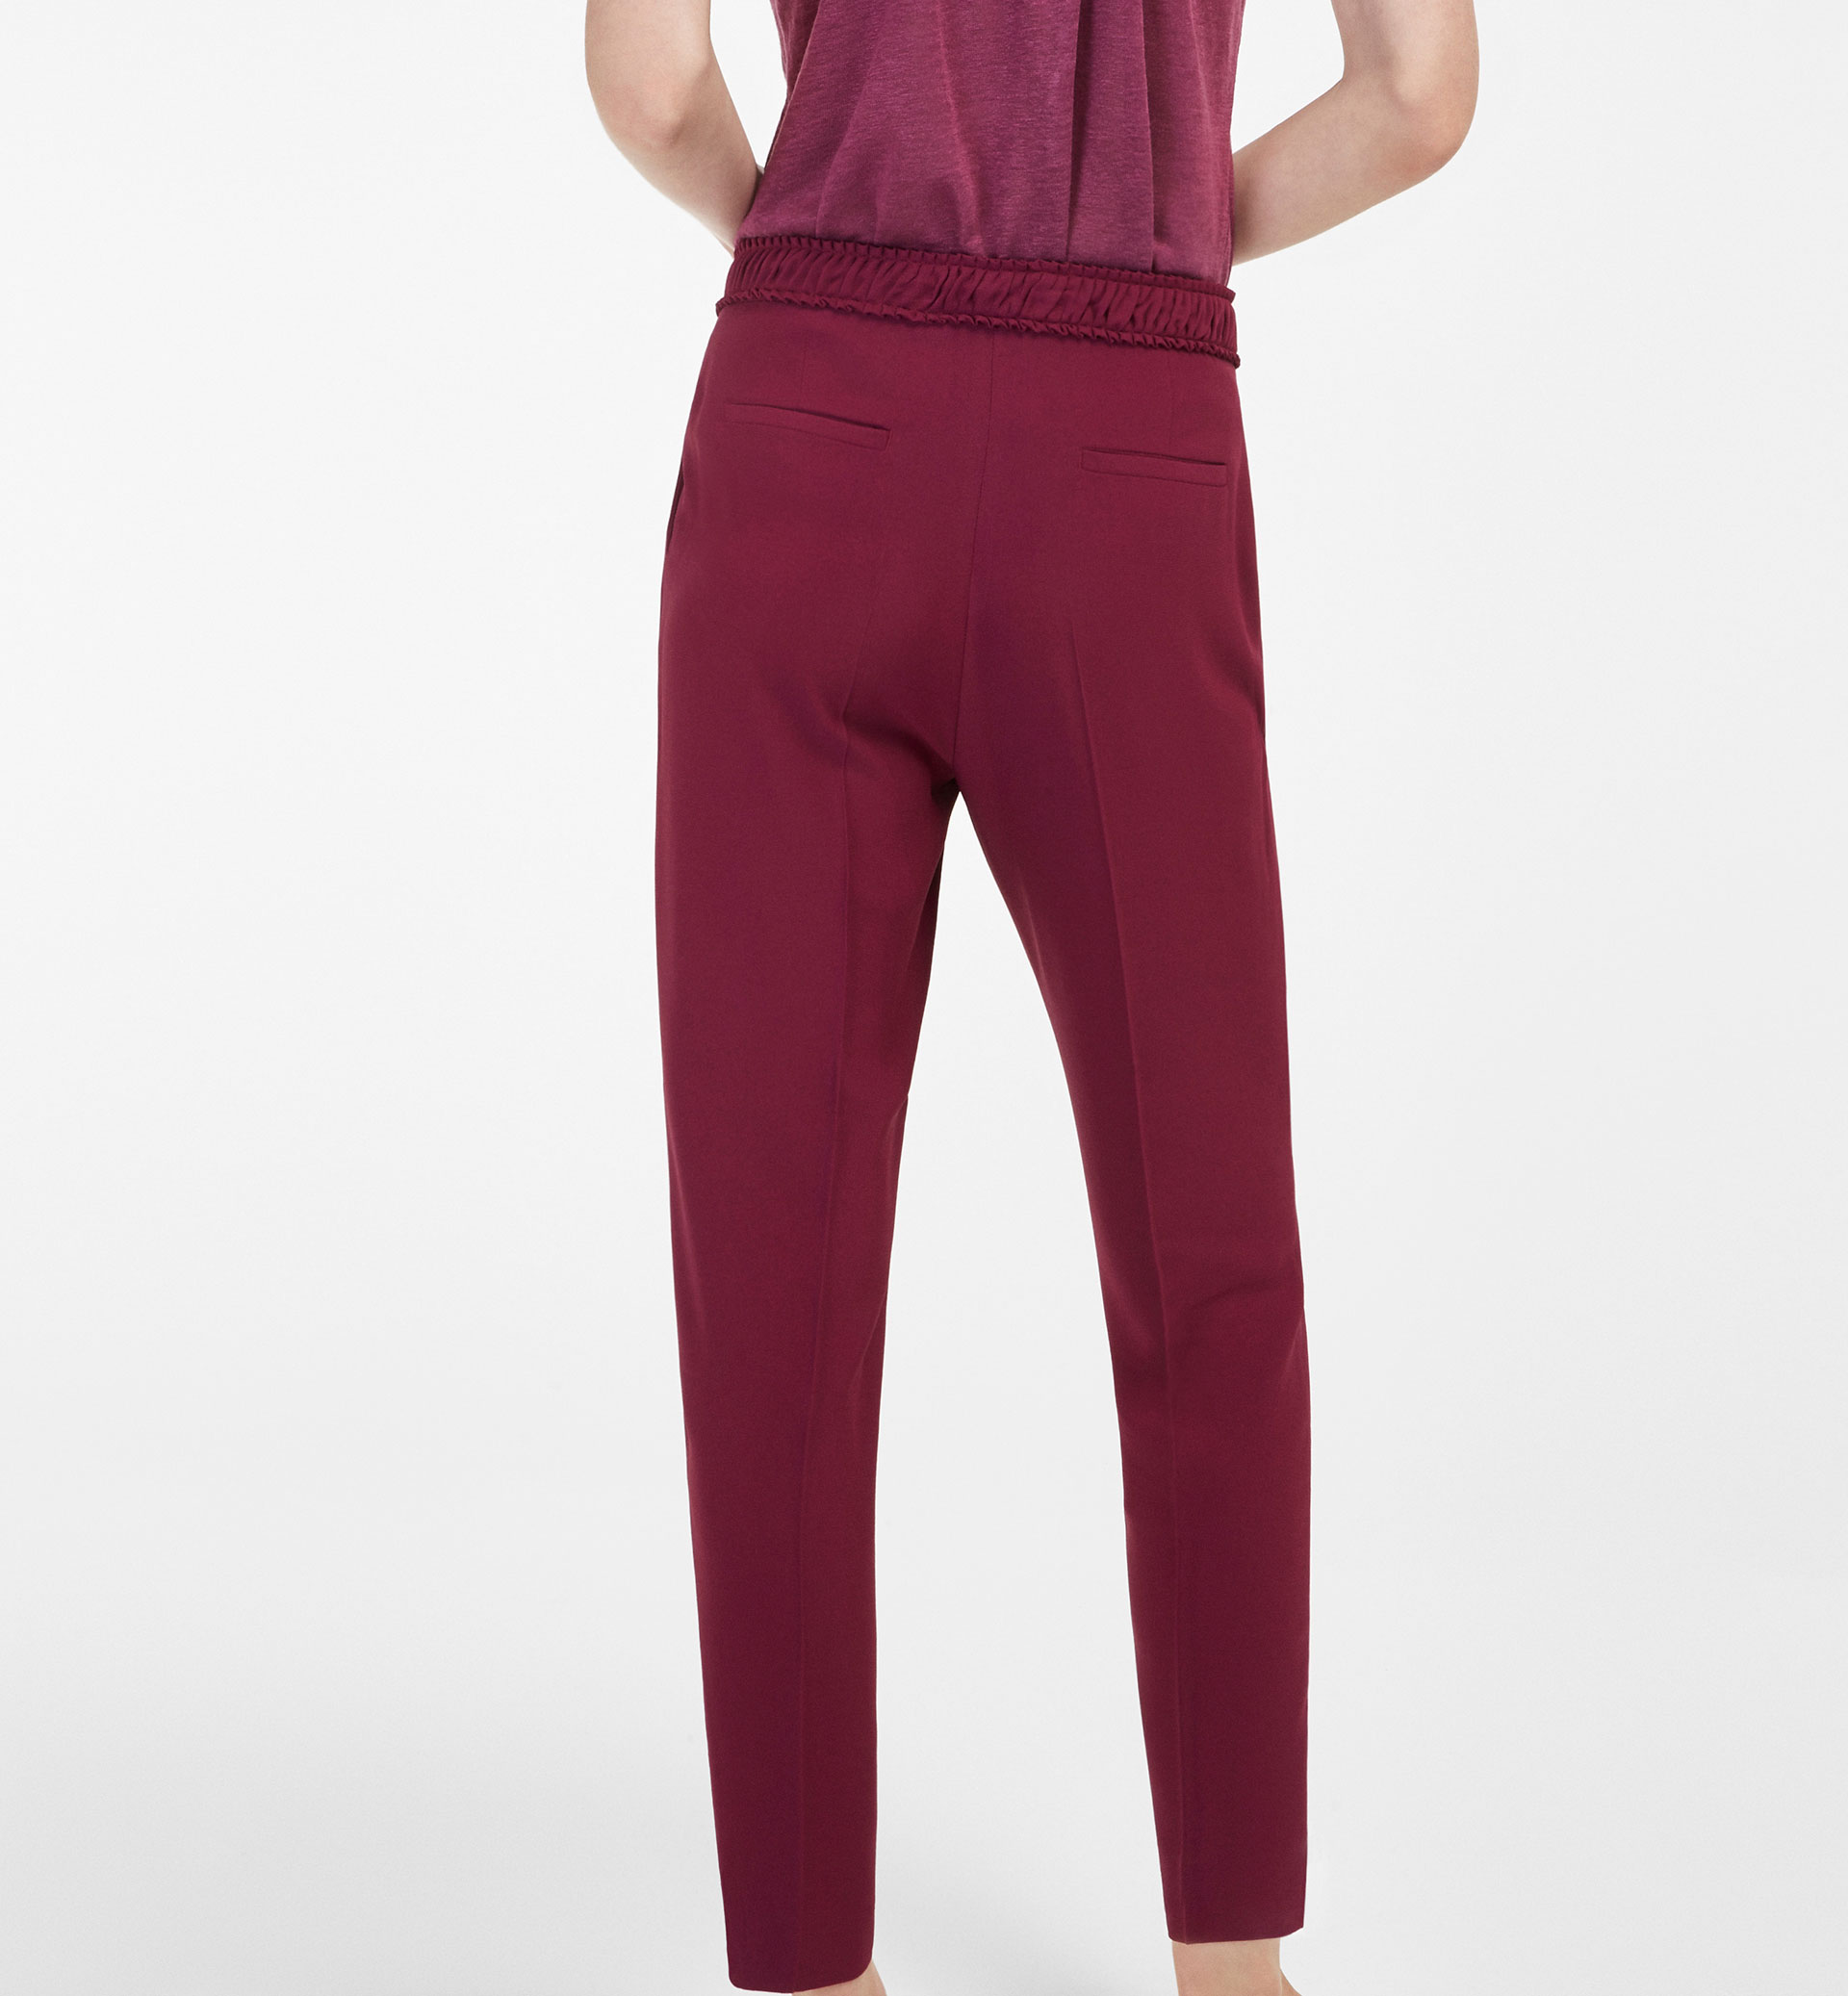 BOW DETAIL FLOWING TROUSERS